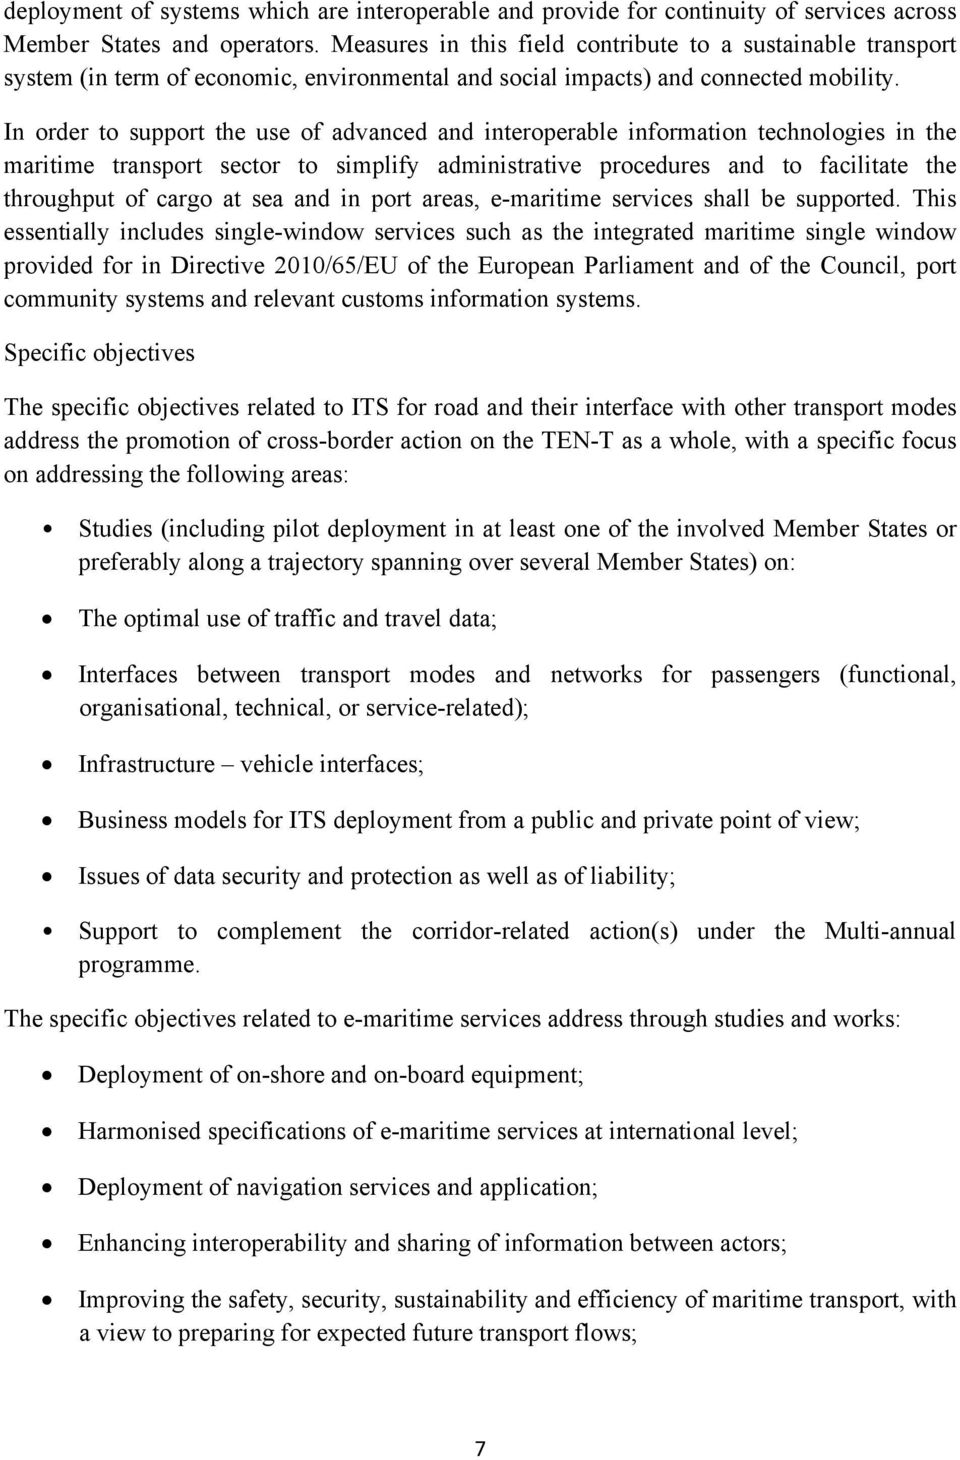 In order to support the use of advanced and interoperable information technologies in the maritime transport sector to simplify administrative procedures and to facilitate the throughput of cargo at